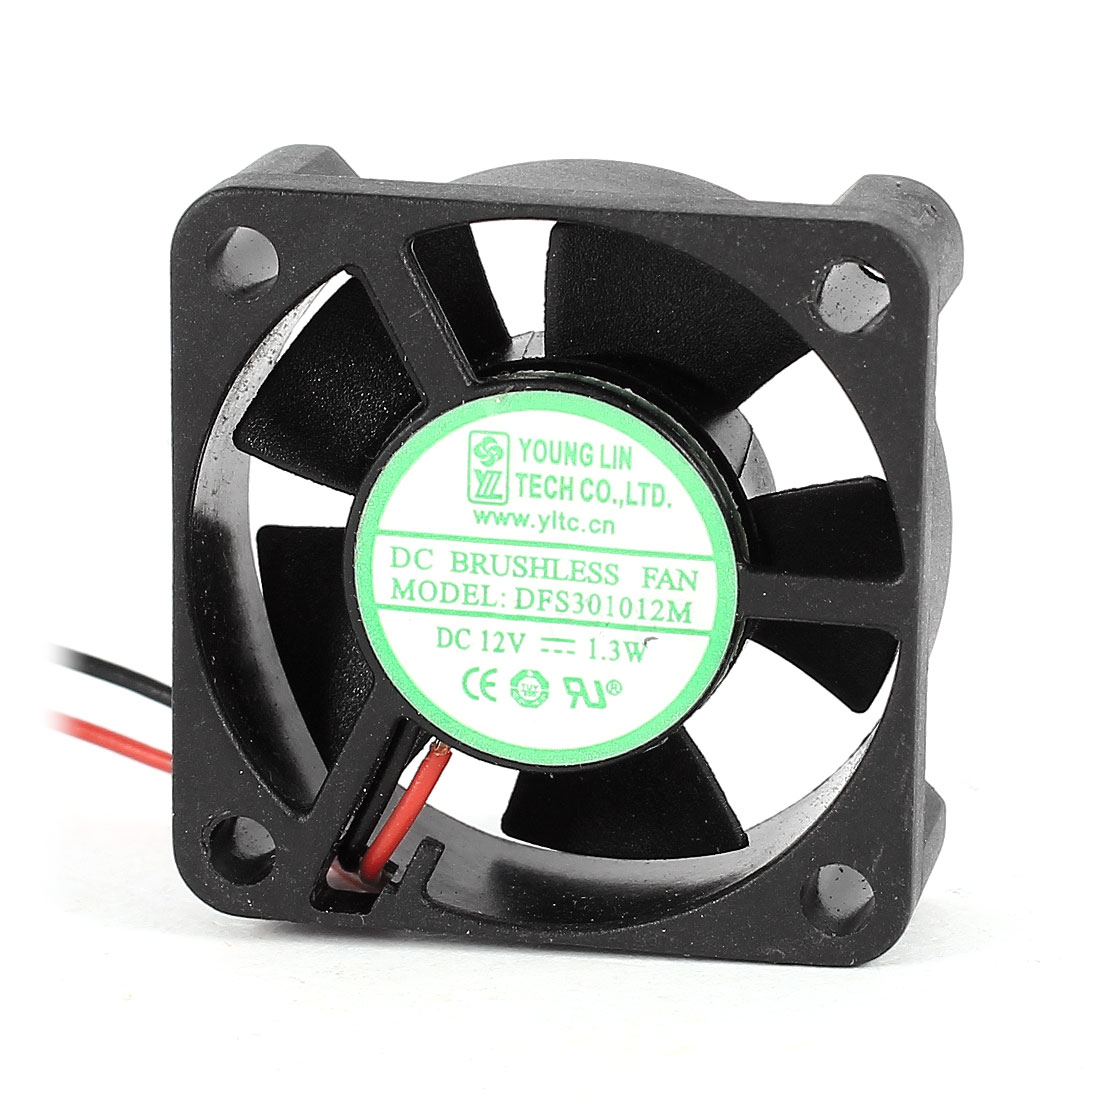 DC 12V 1.3W 3010 30mmx30mmx10mm 2-Wire Cooling Fan Black for Chipset Radiator